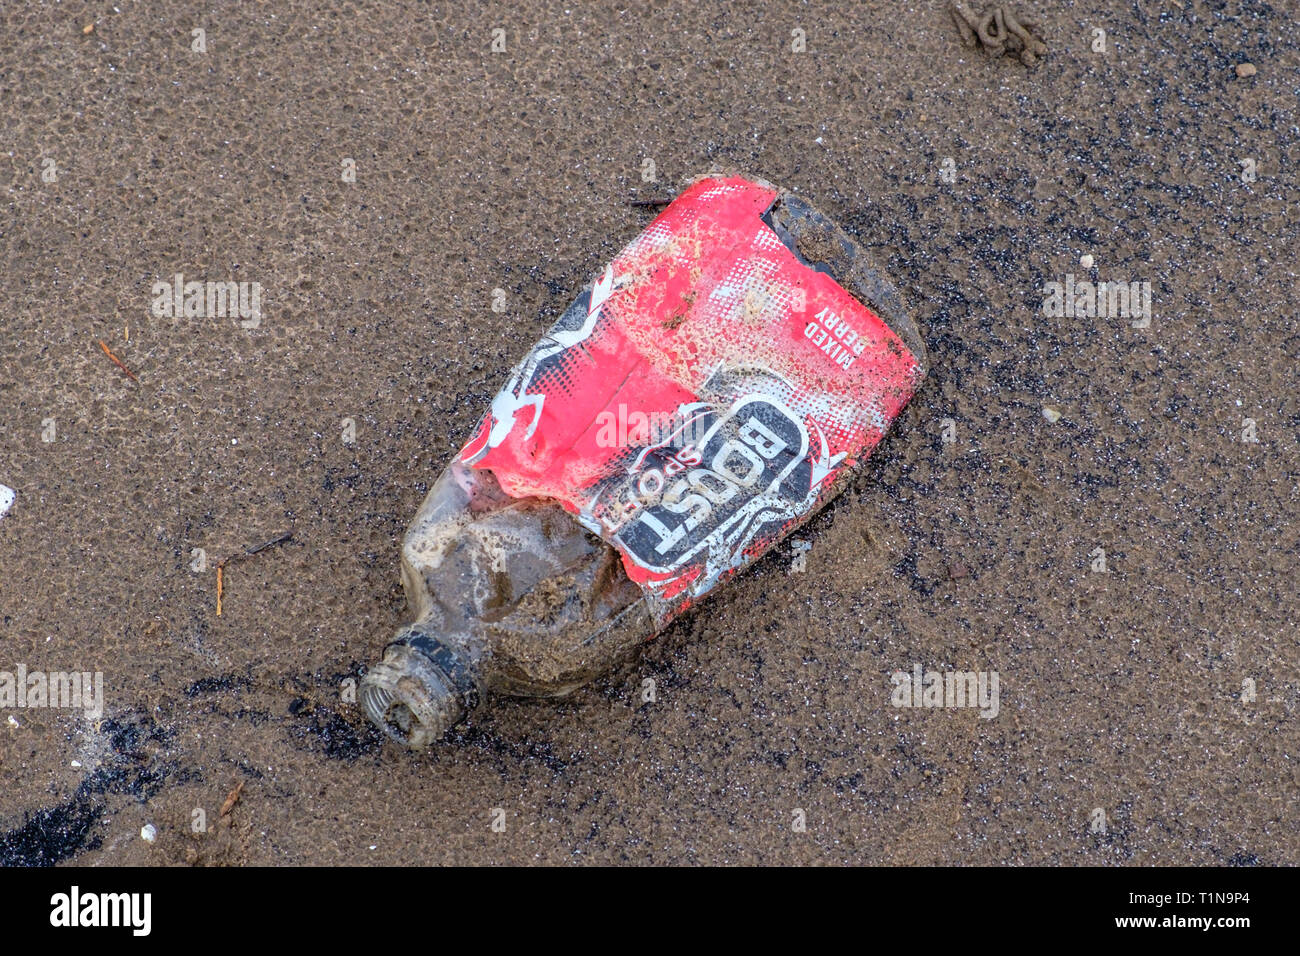 Irvine, Scotland, UK - march, 18, 2019: Environmental image of Waste with a Boost Sport Bottle that has been washed up or out being about to join the  - Stock Image